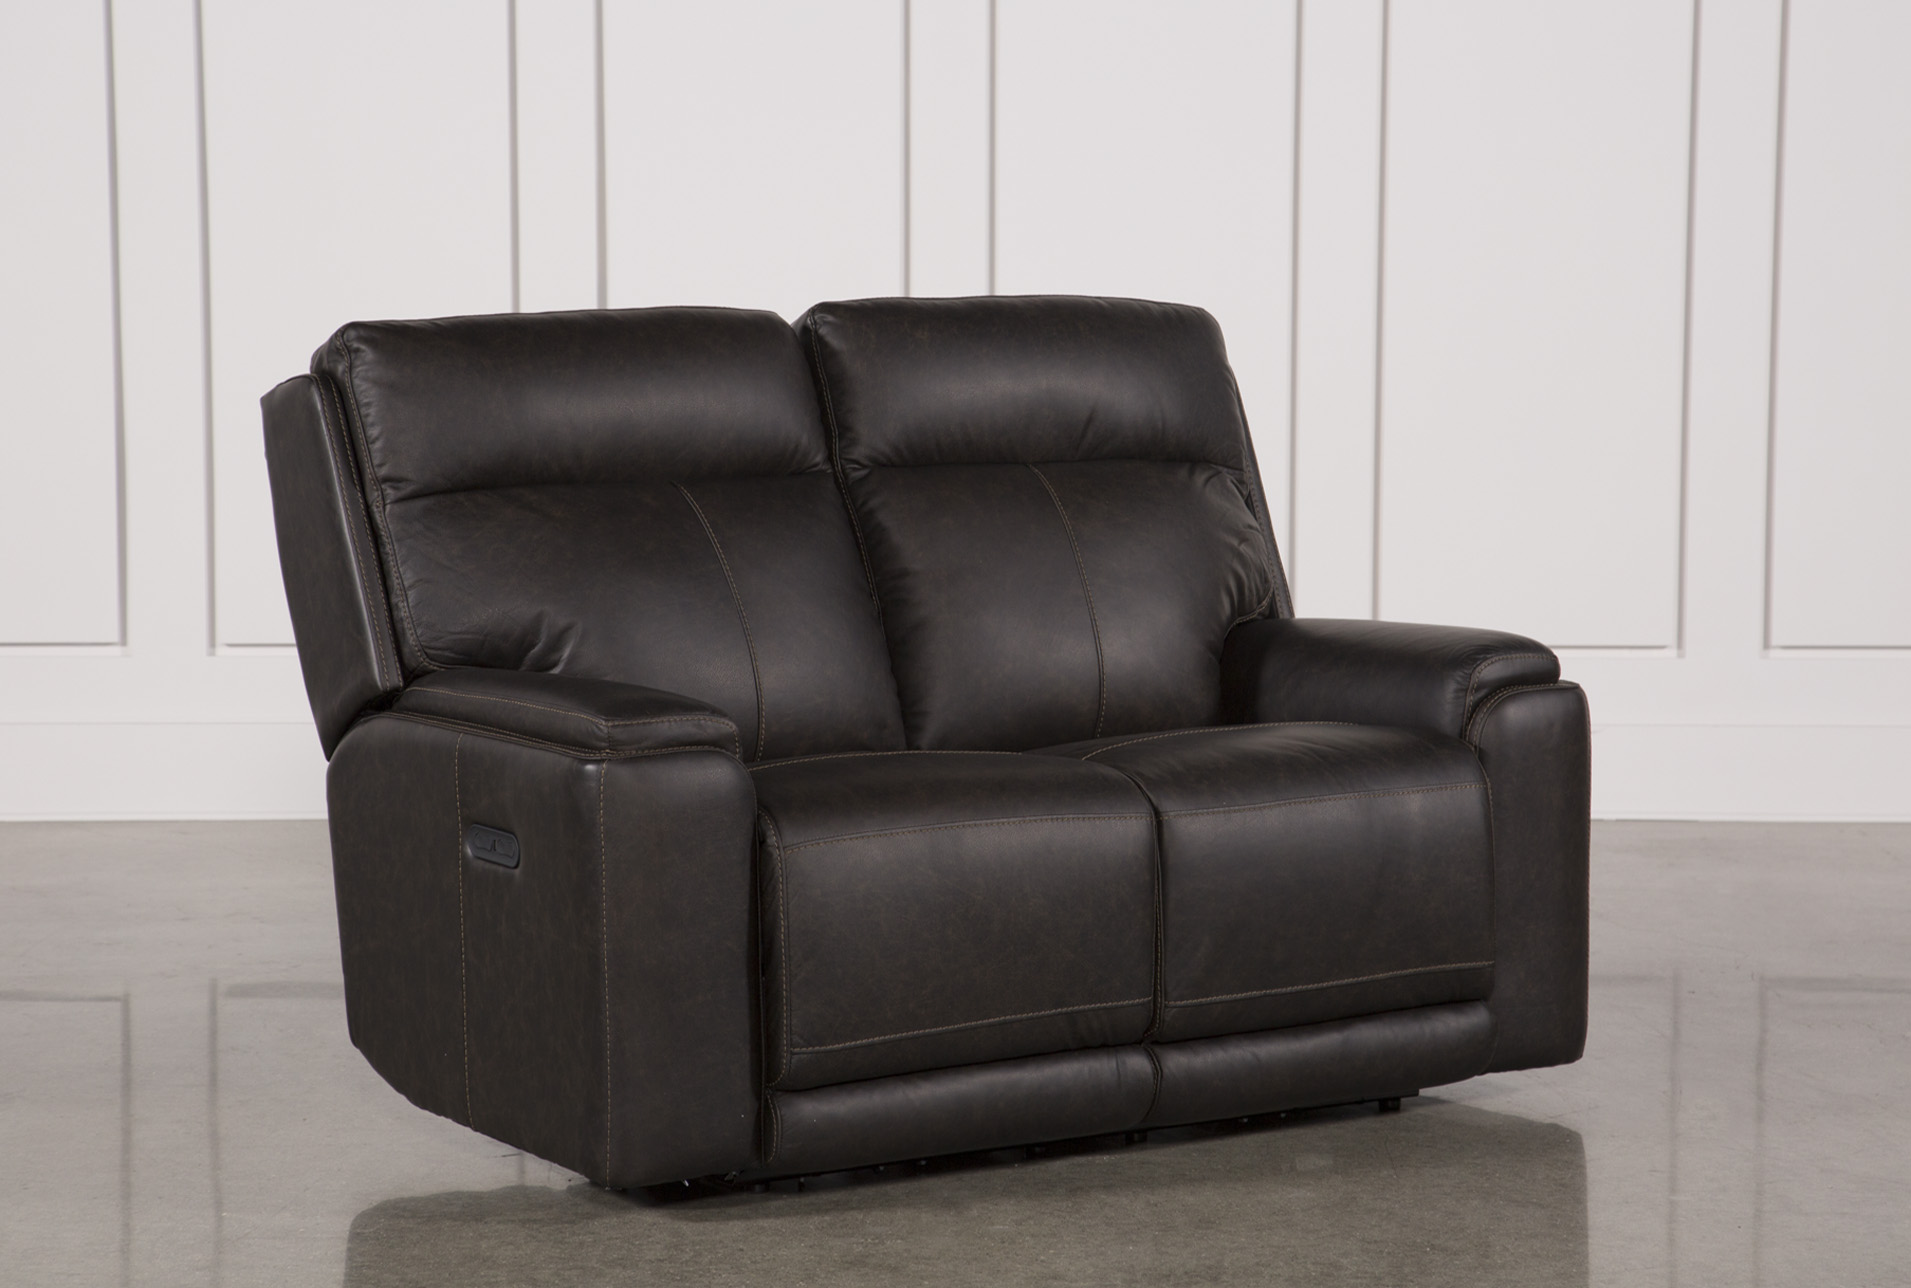 Sinjin Leather Power Reclining Loveseat W/Power Headrest | Living Spaces